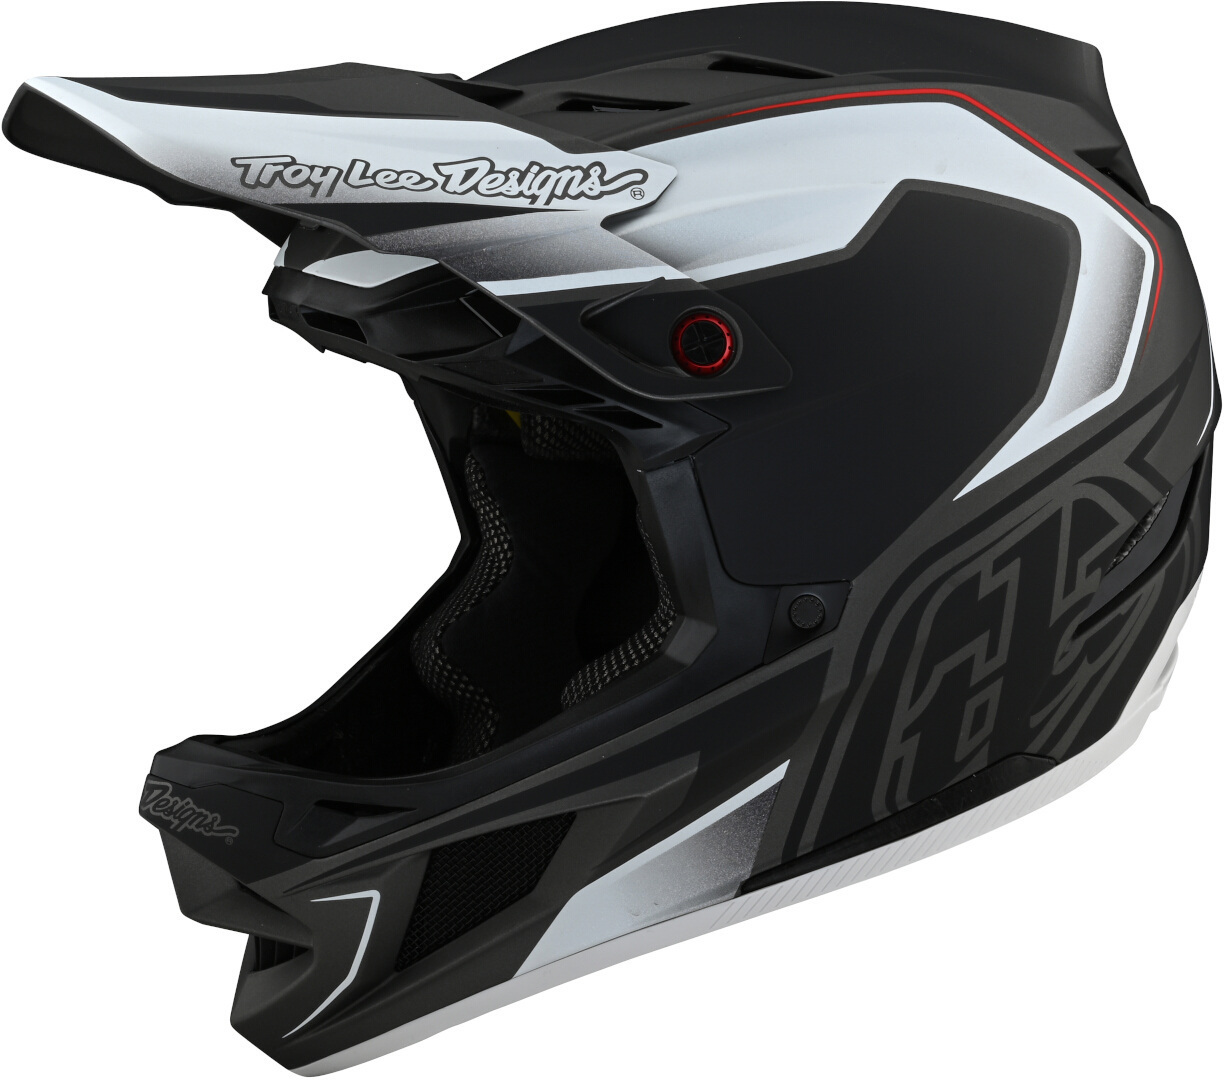 Troy Lee Designs D4 Exile MIPS Downhill Helm, schwarz-weiss, Größe M, schwarz-weiss, Größe M